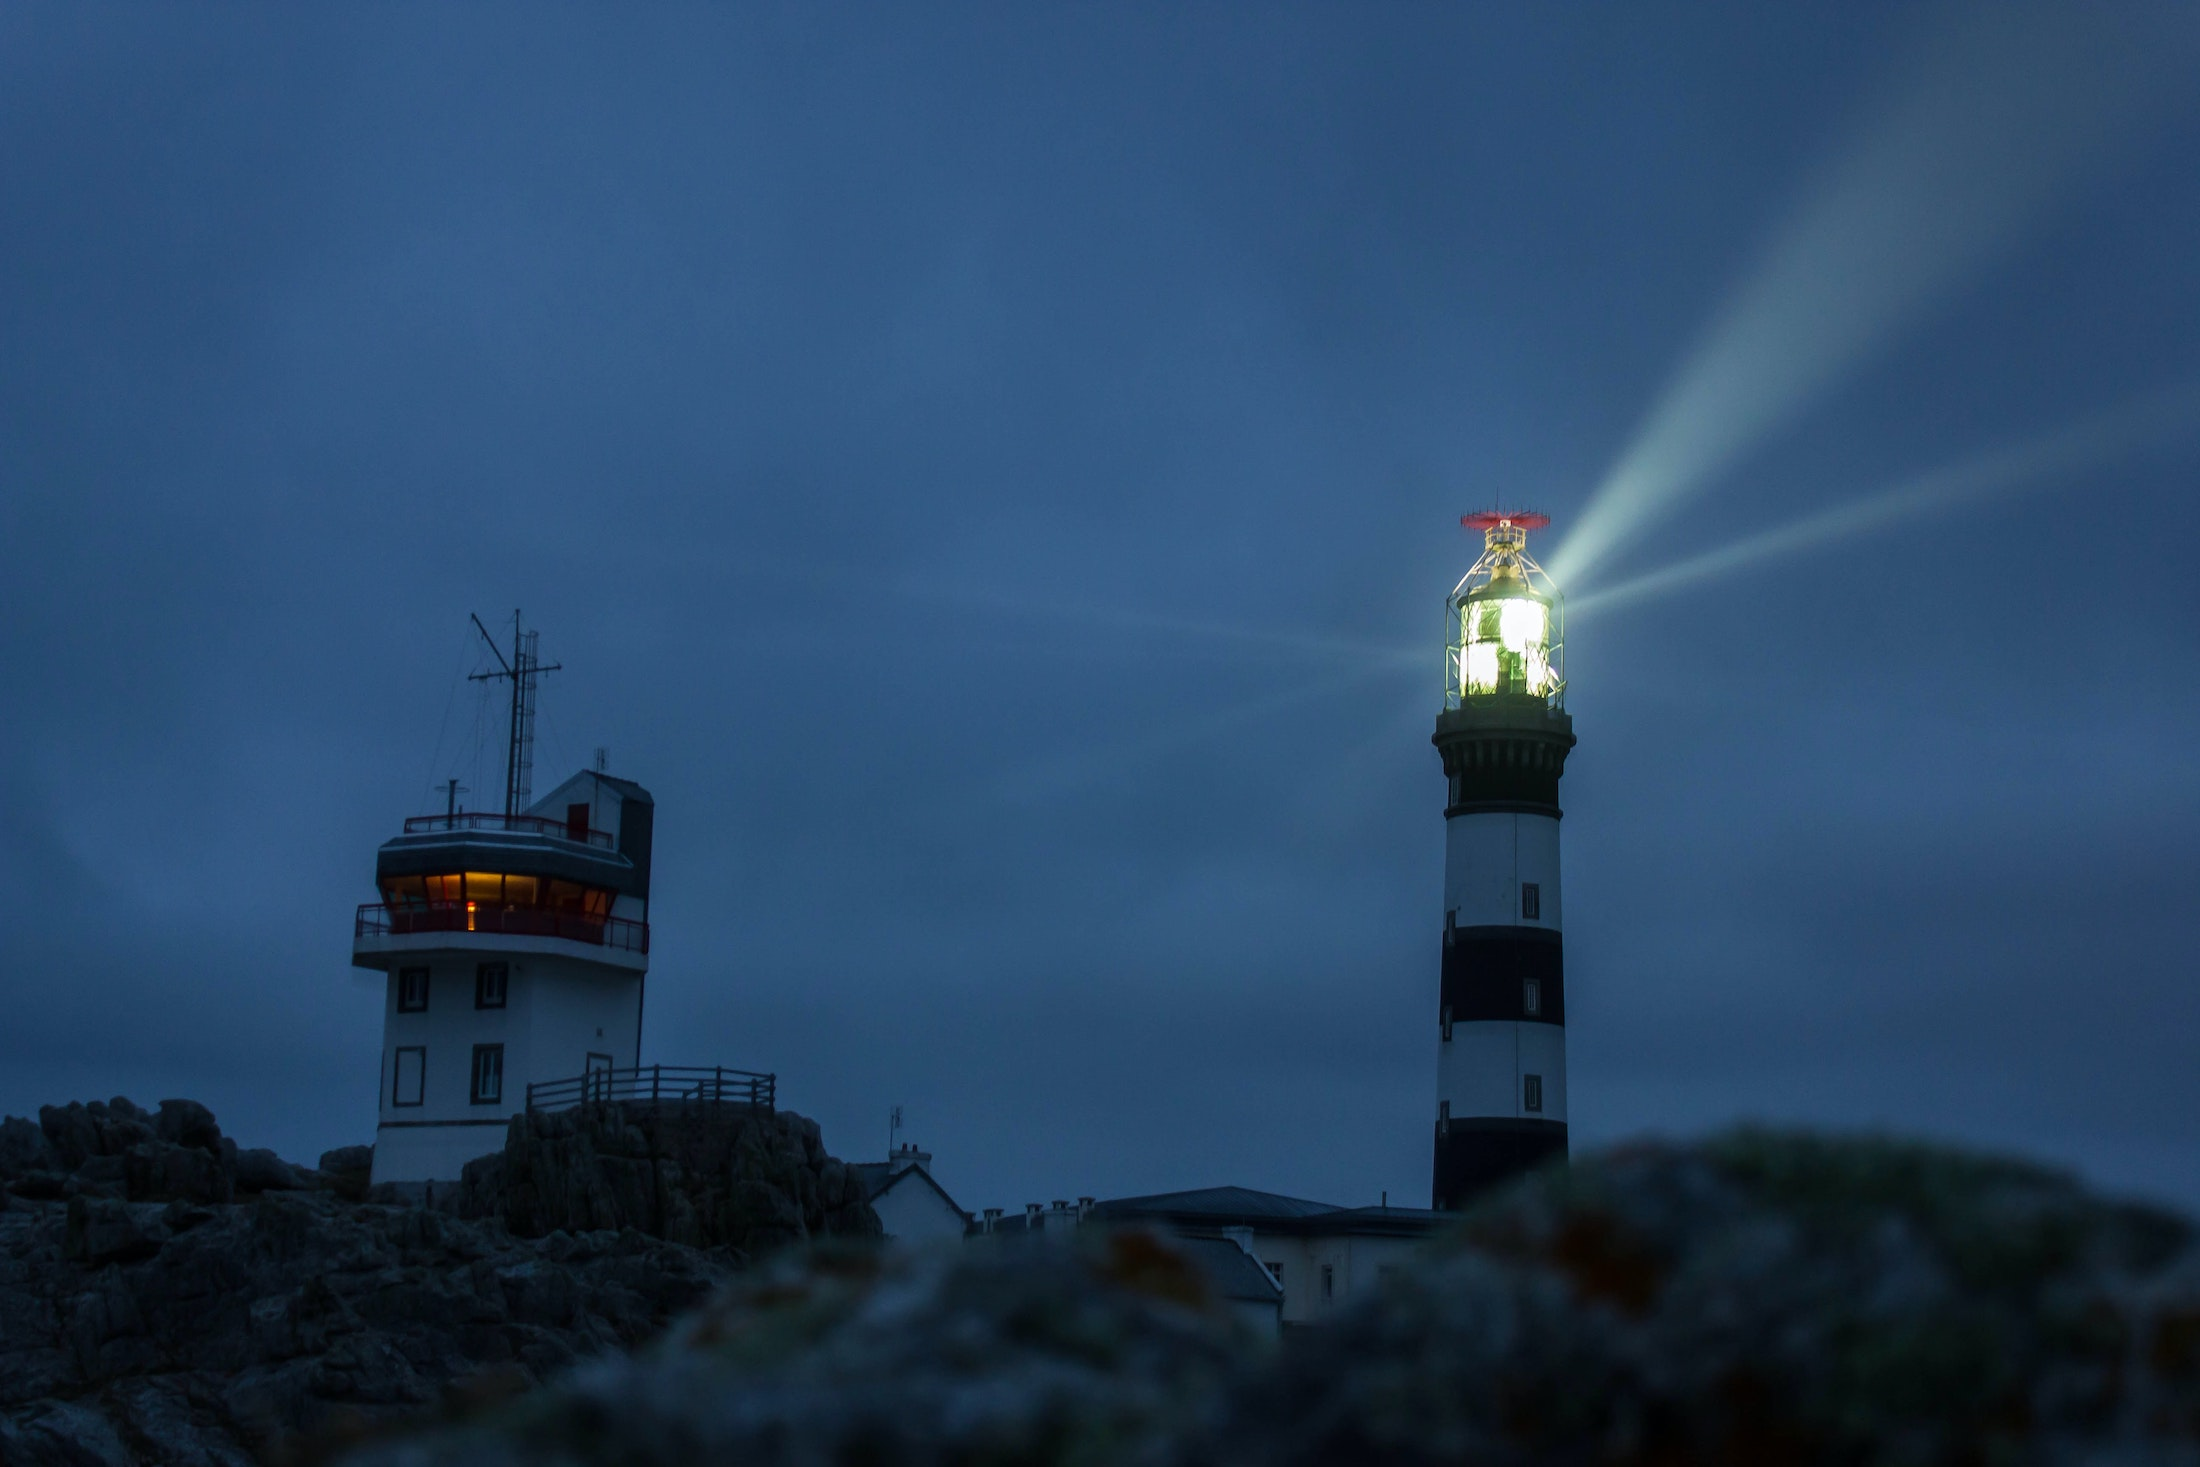 lighthouse beacon of light fda guidance label comprehension